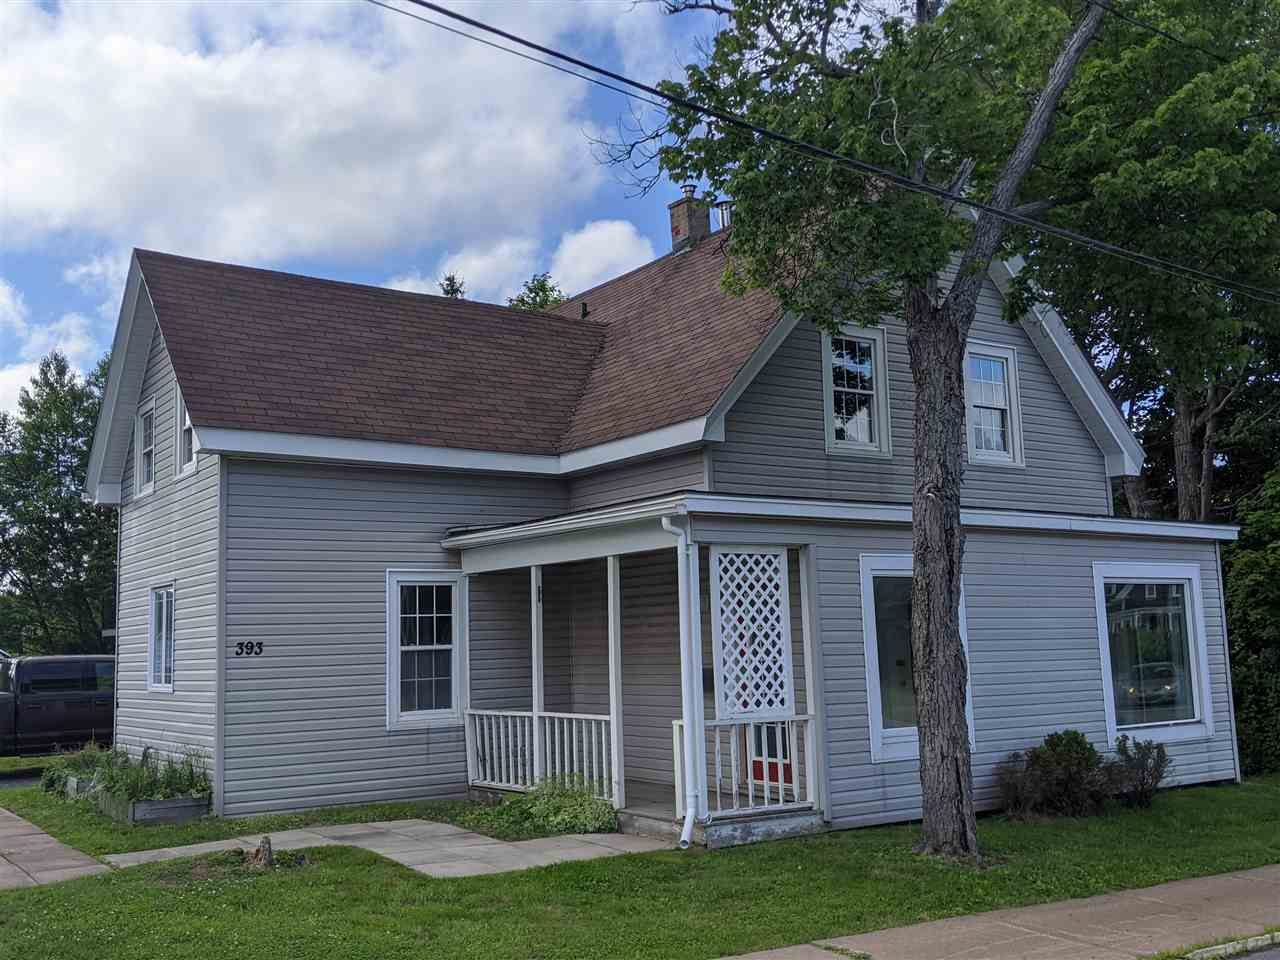 Main Photo: 393 Nelson Street in New Glasgow: 106-New Glasgow, Stellarton Residential for sale (Northern Region)  : MLS®# 202013435